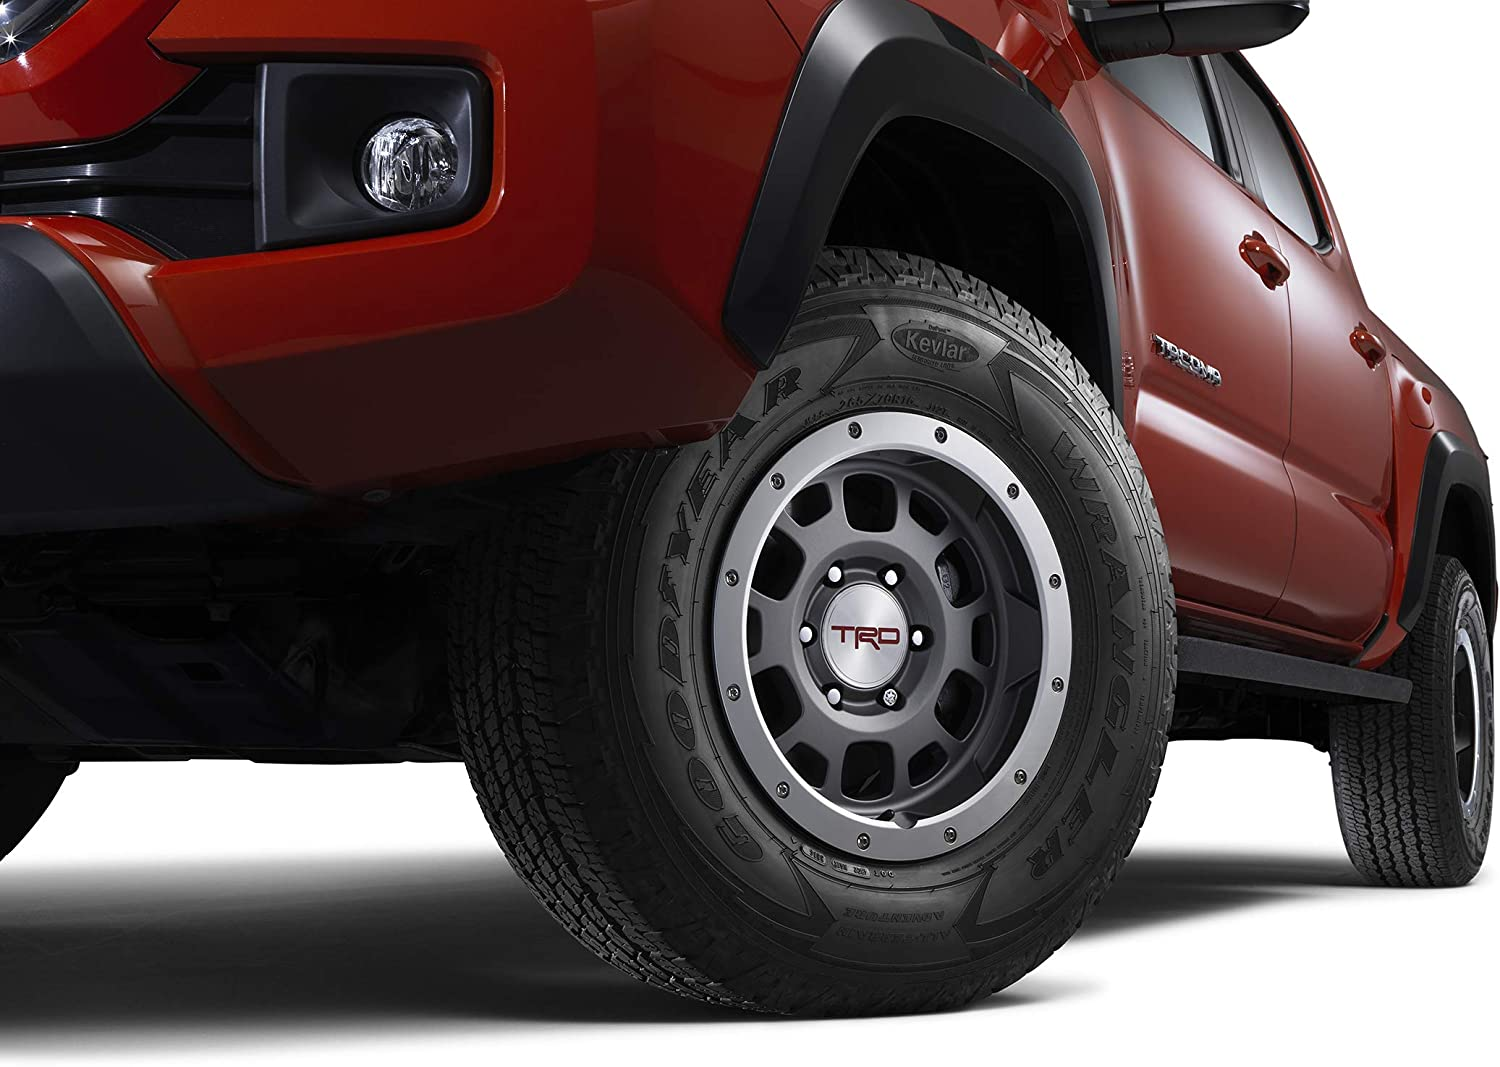 Amazon Com Trd Tacoma 4runner Fj Cruiser 16 In Off Road Beadlock Style Alloy Wheel Graphite 1 Automotive